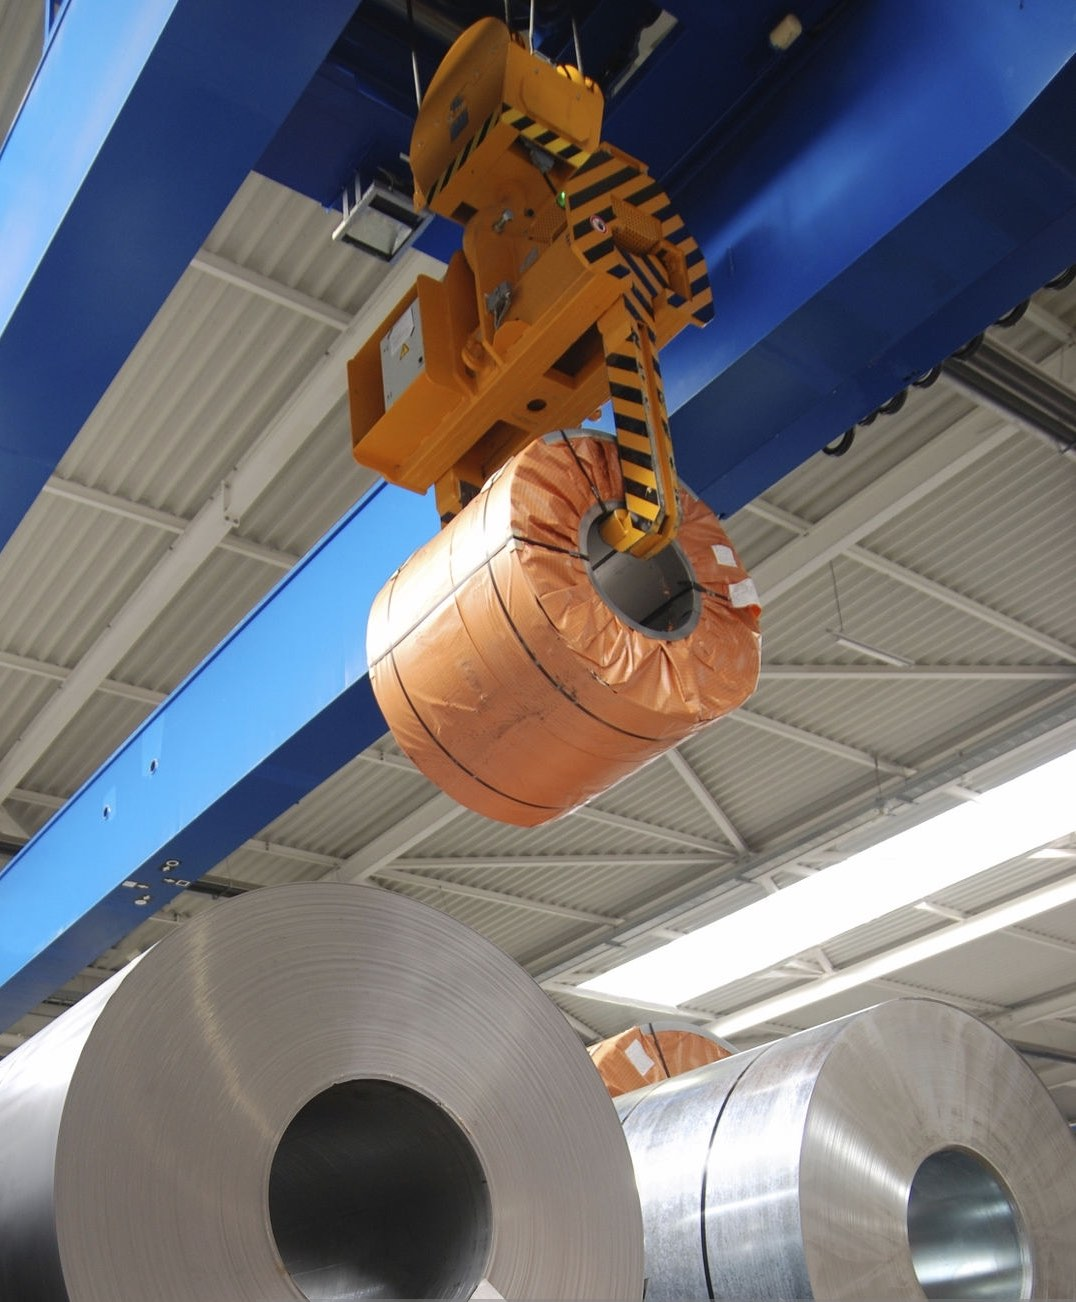 Crane lifting rolls of sheet steel in a warehouse/factory. Please see related pictures: